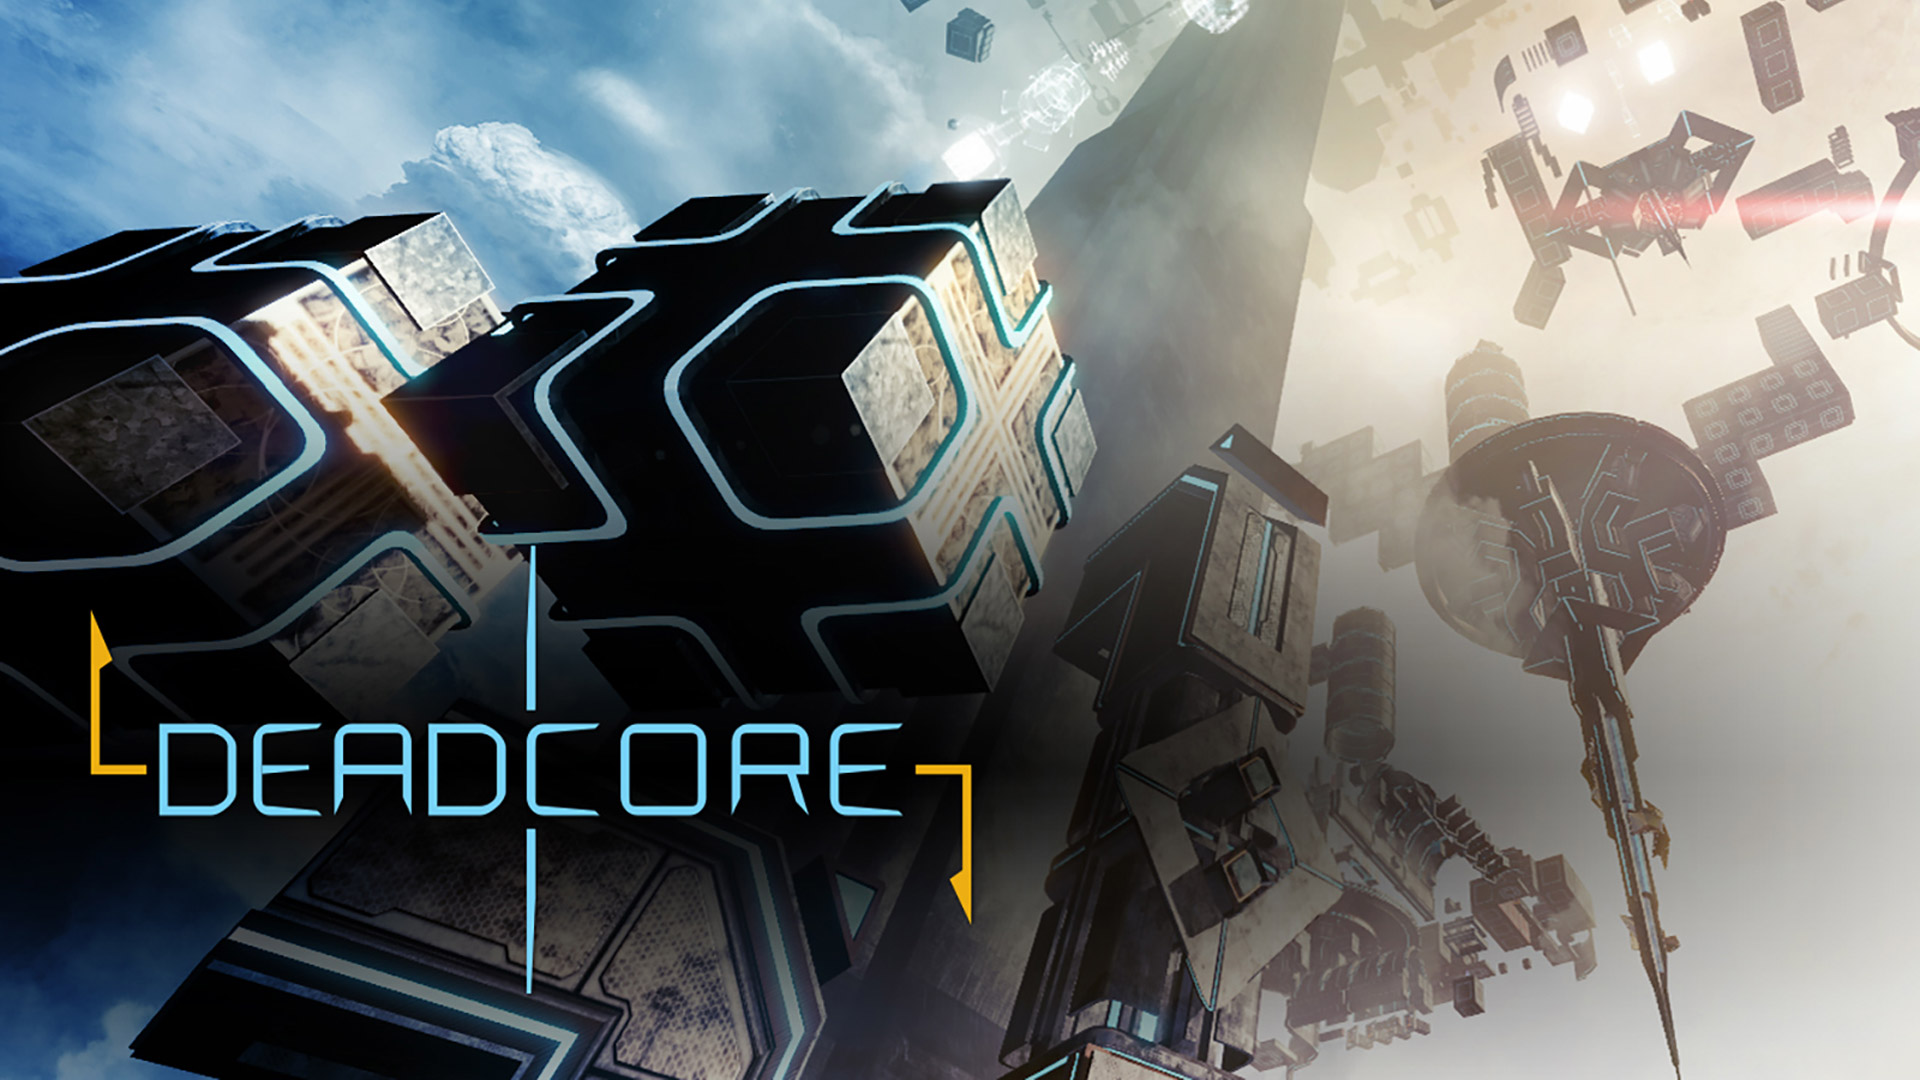 Free Deadcore Wallpaper in 1920x1080